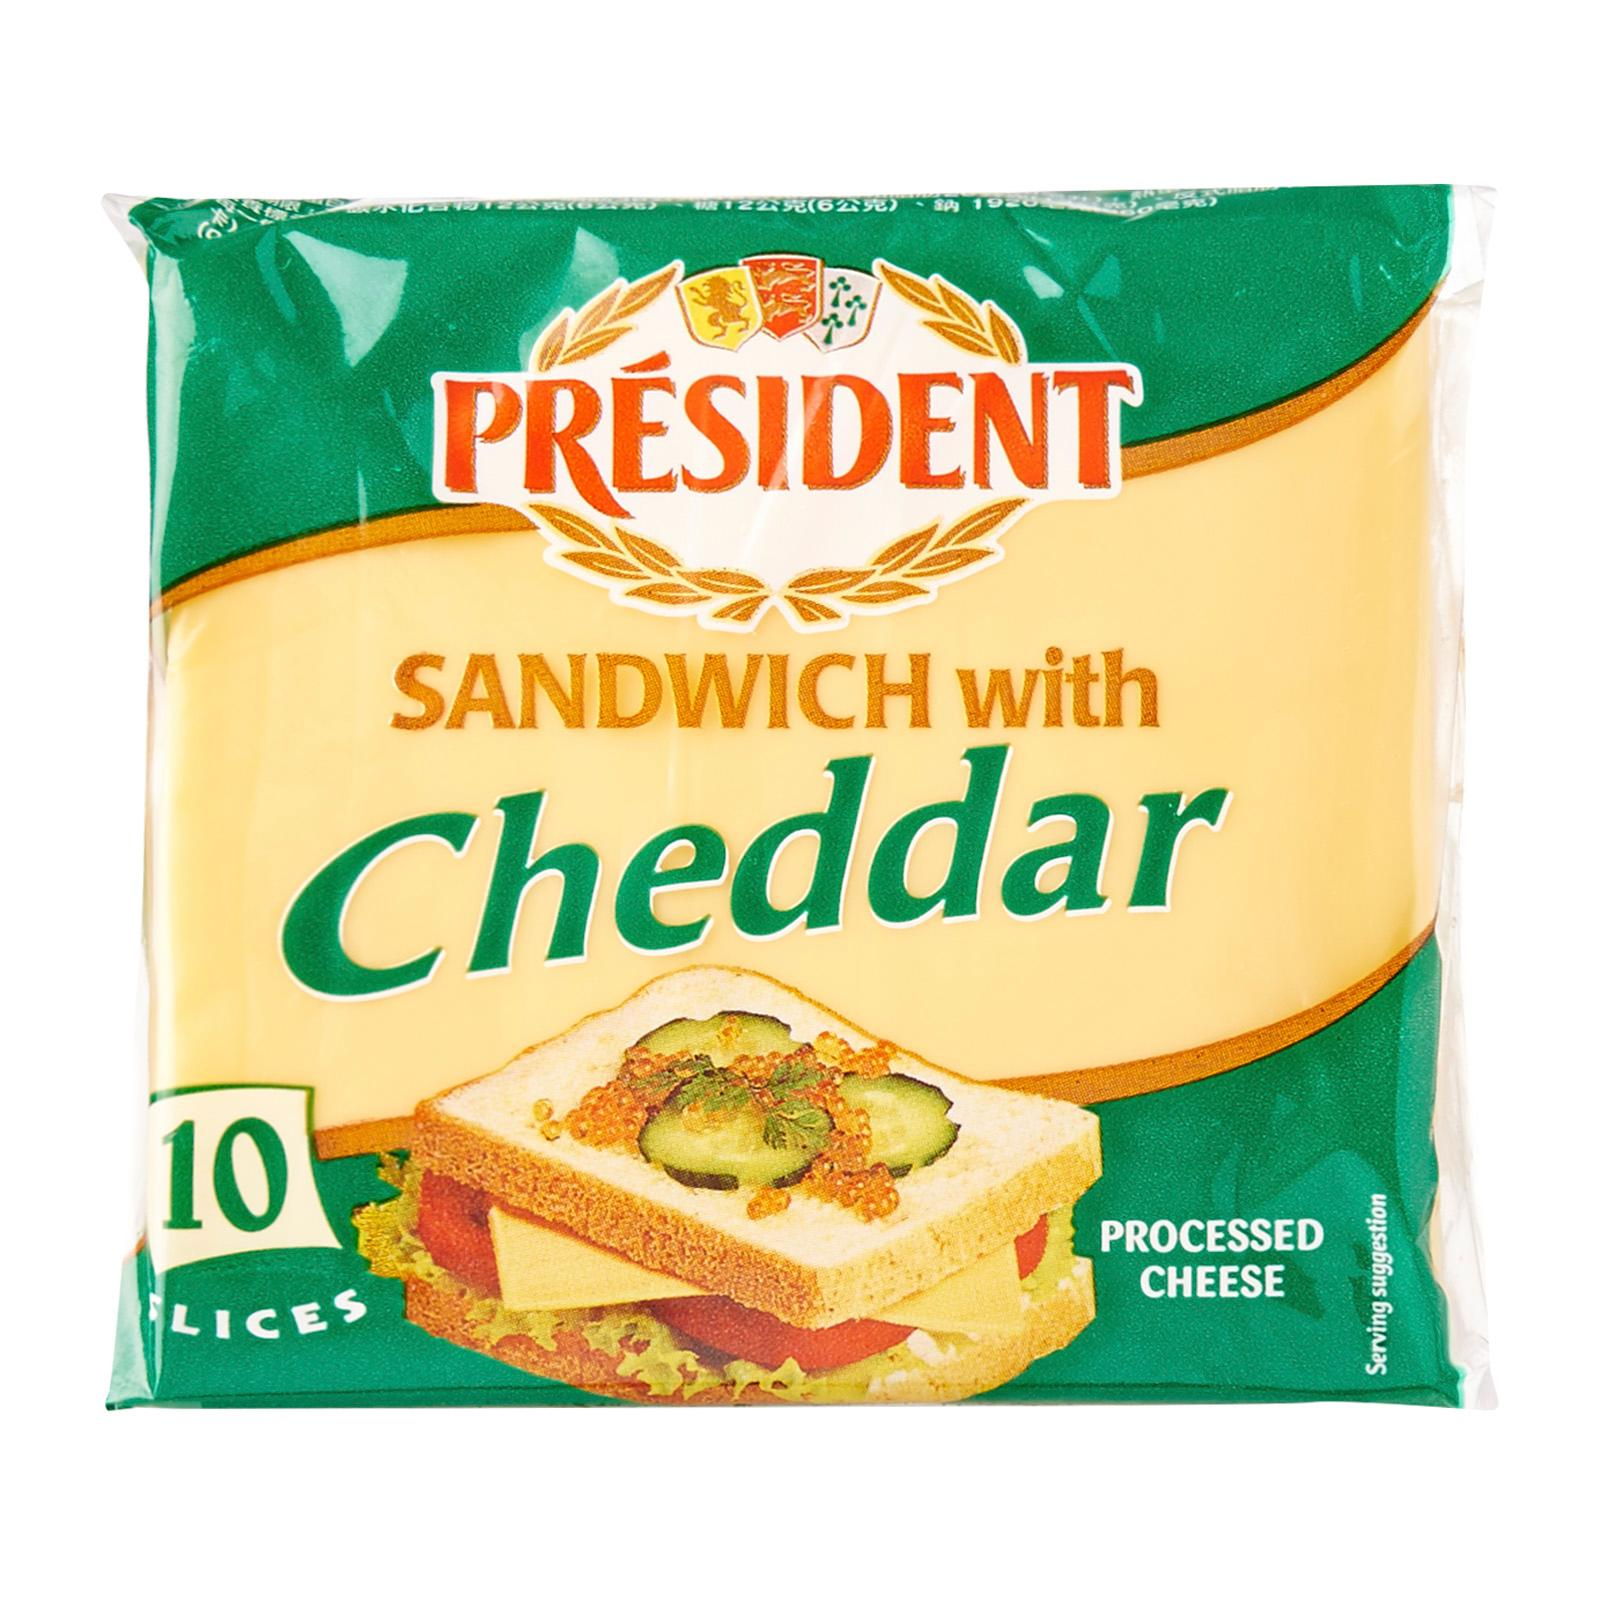 President Sandwich Cheddar Cheese Slices 200g - from RedMart